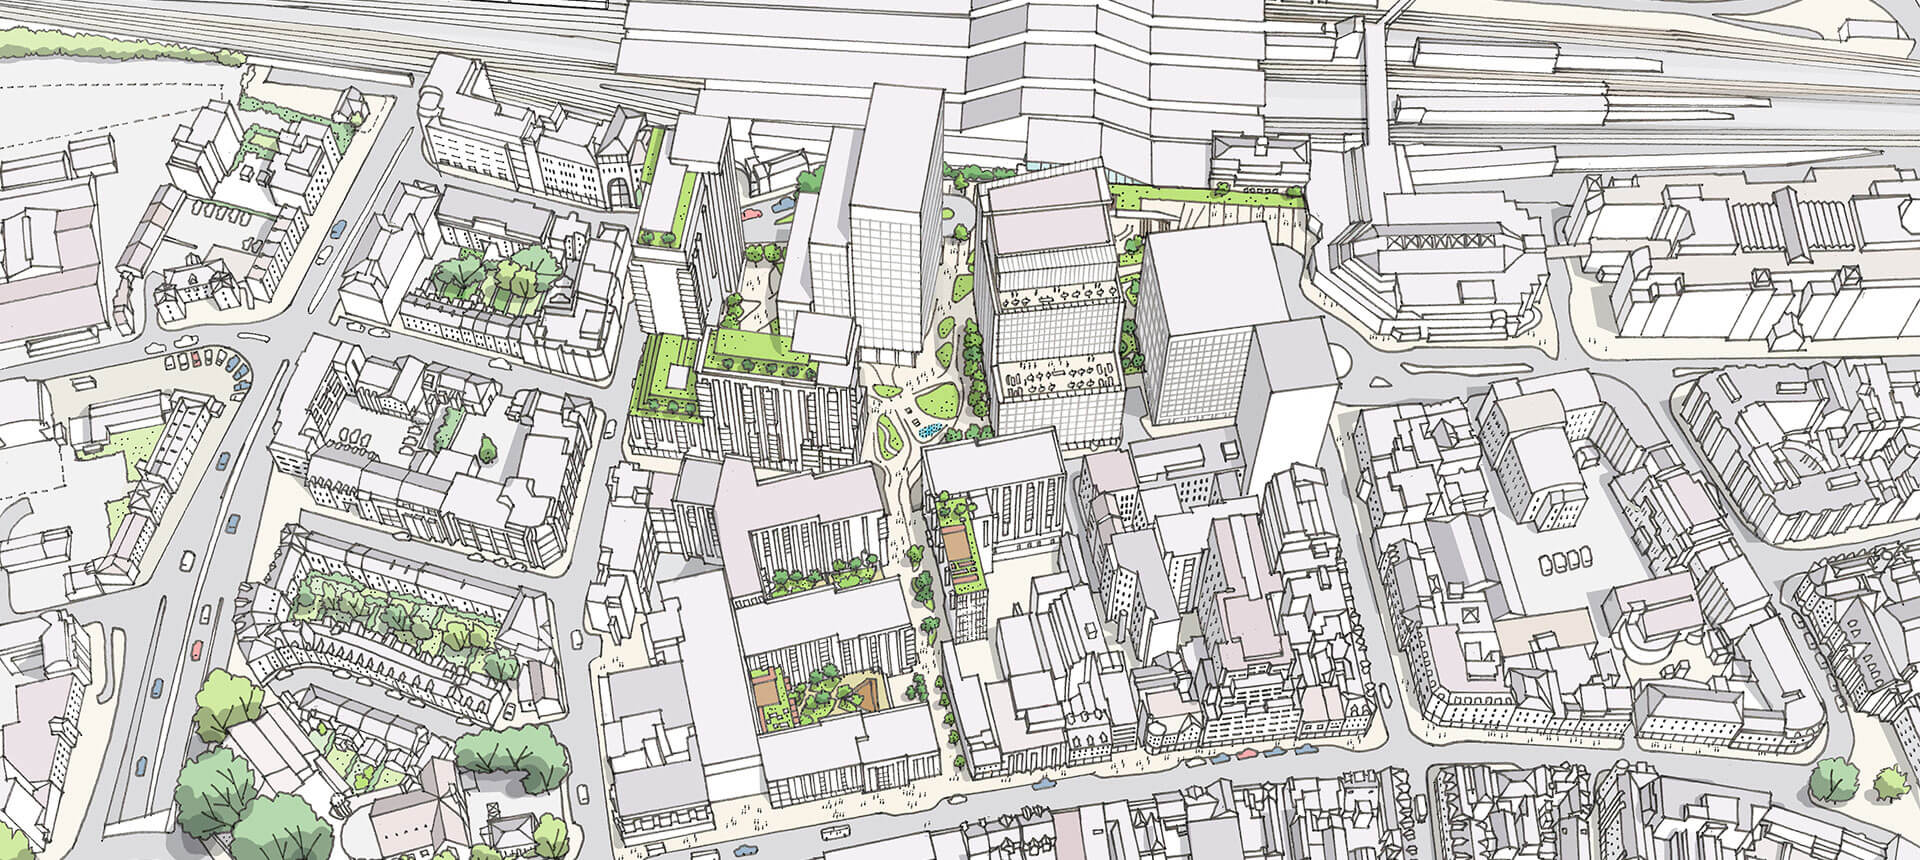 Station Hill North Reading, UK, Drawing Aerial View